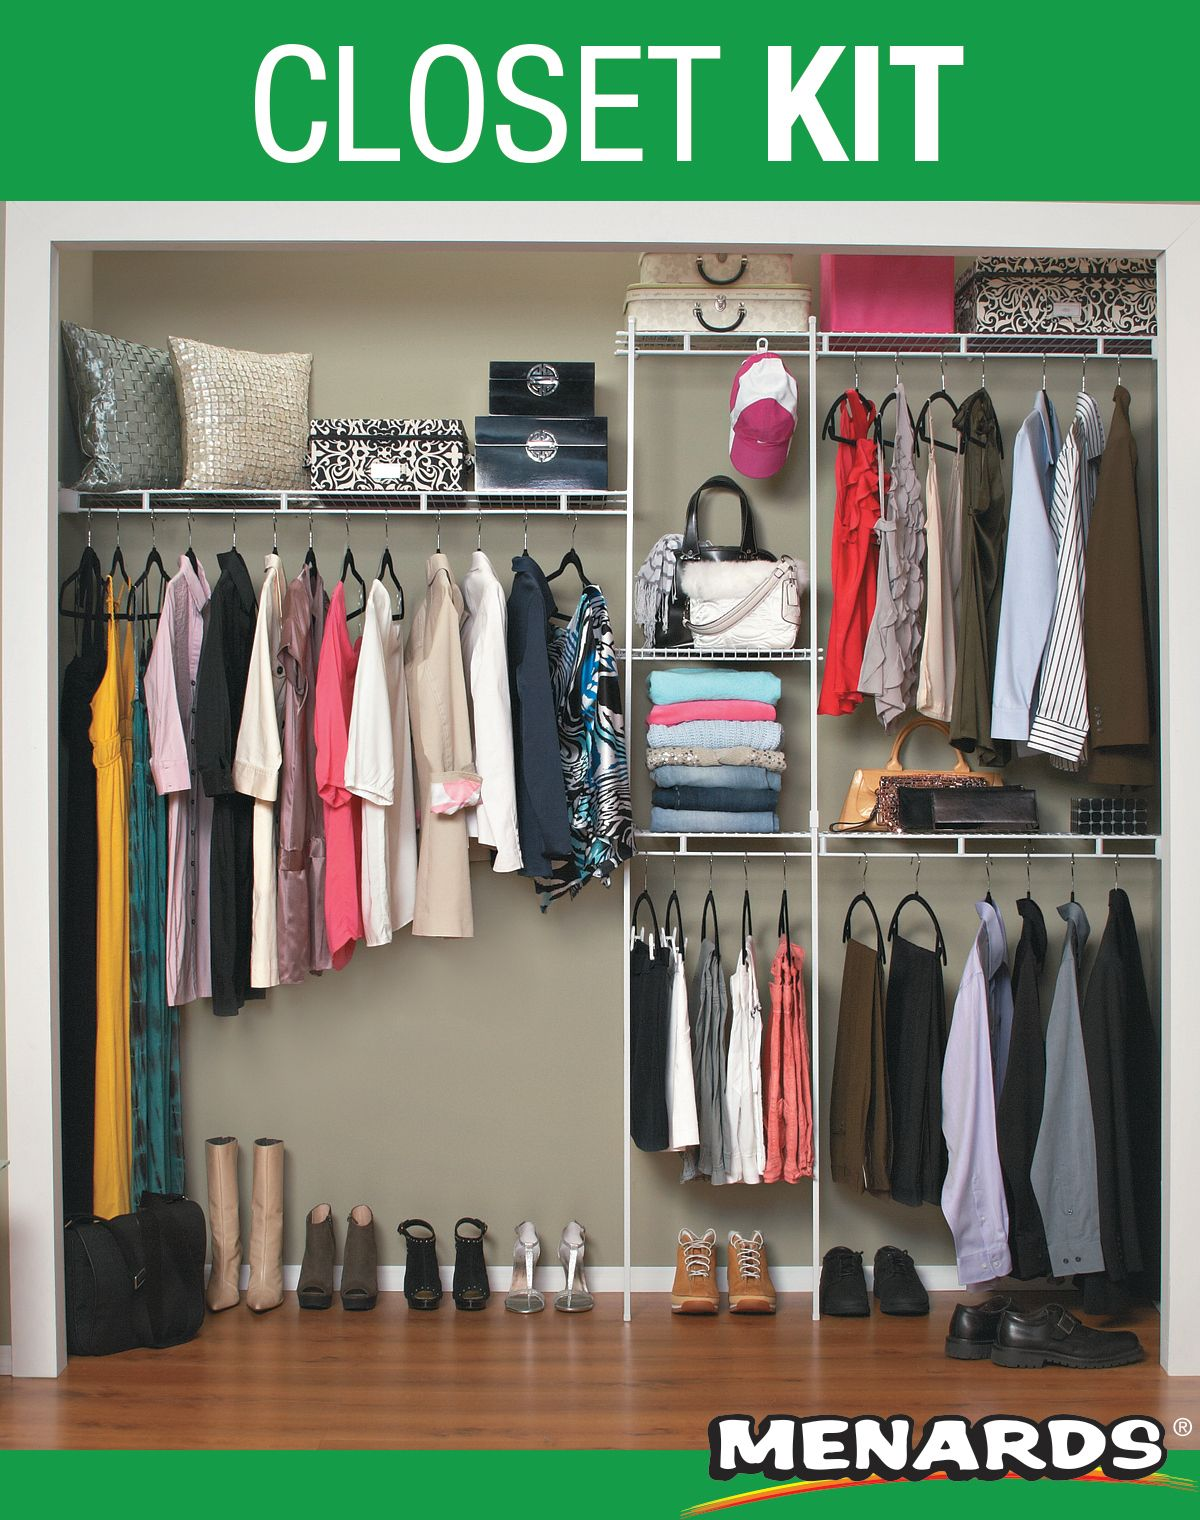 The Economical Way To Organize Your Closets Ventilated Shelving Allows For Air Circulation Clothes Hanger Storage Clothing Rack Bedroom Closet Organizer Kits